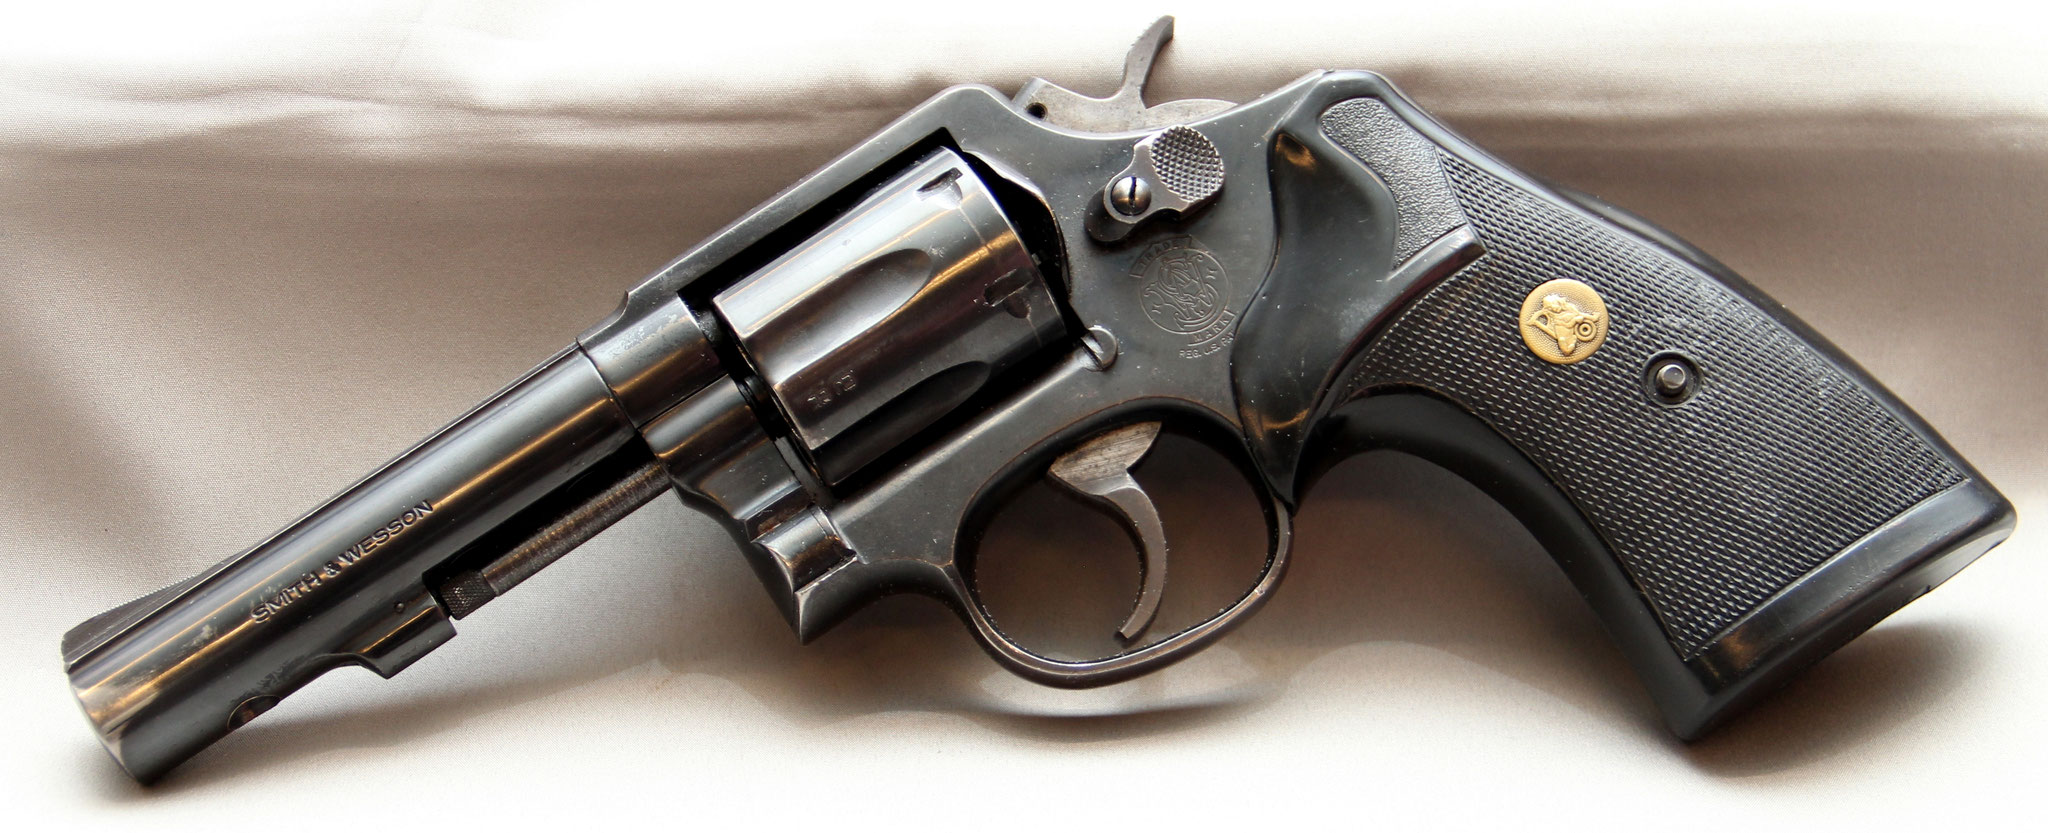 Smith & Wesson 13-3, police, No.: AUL8381. € 450,-